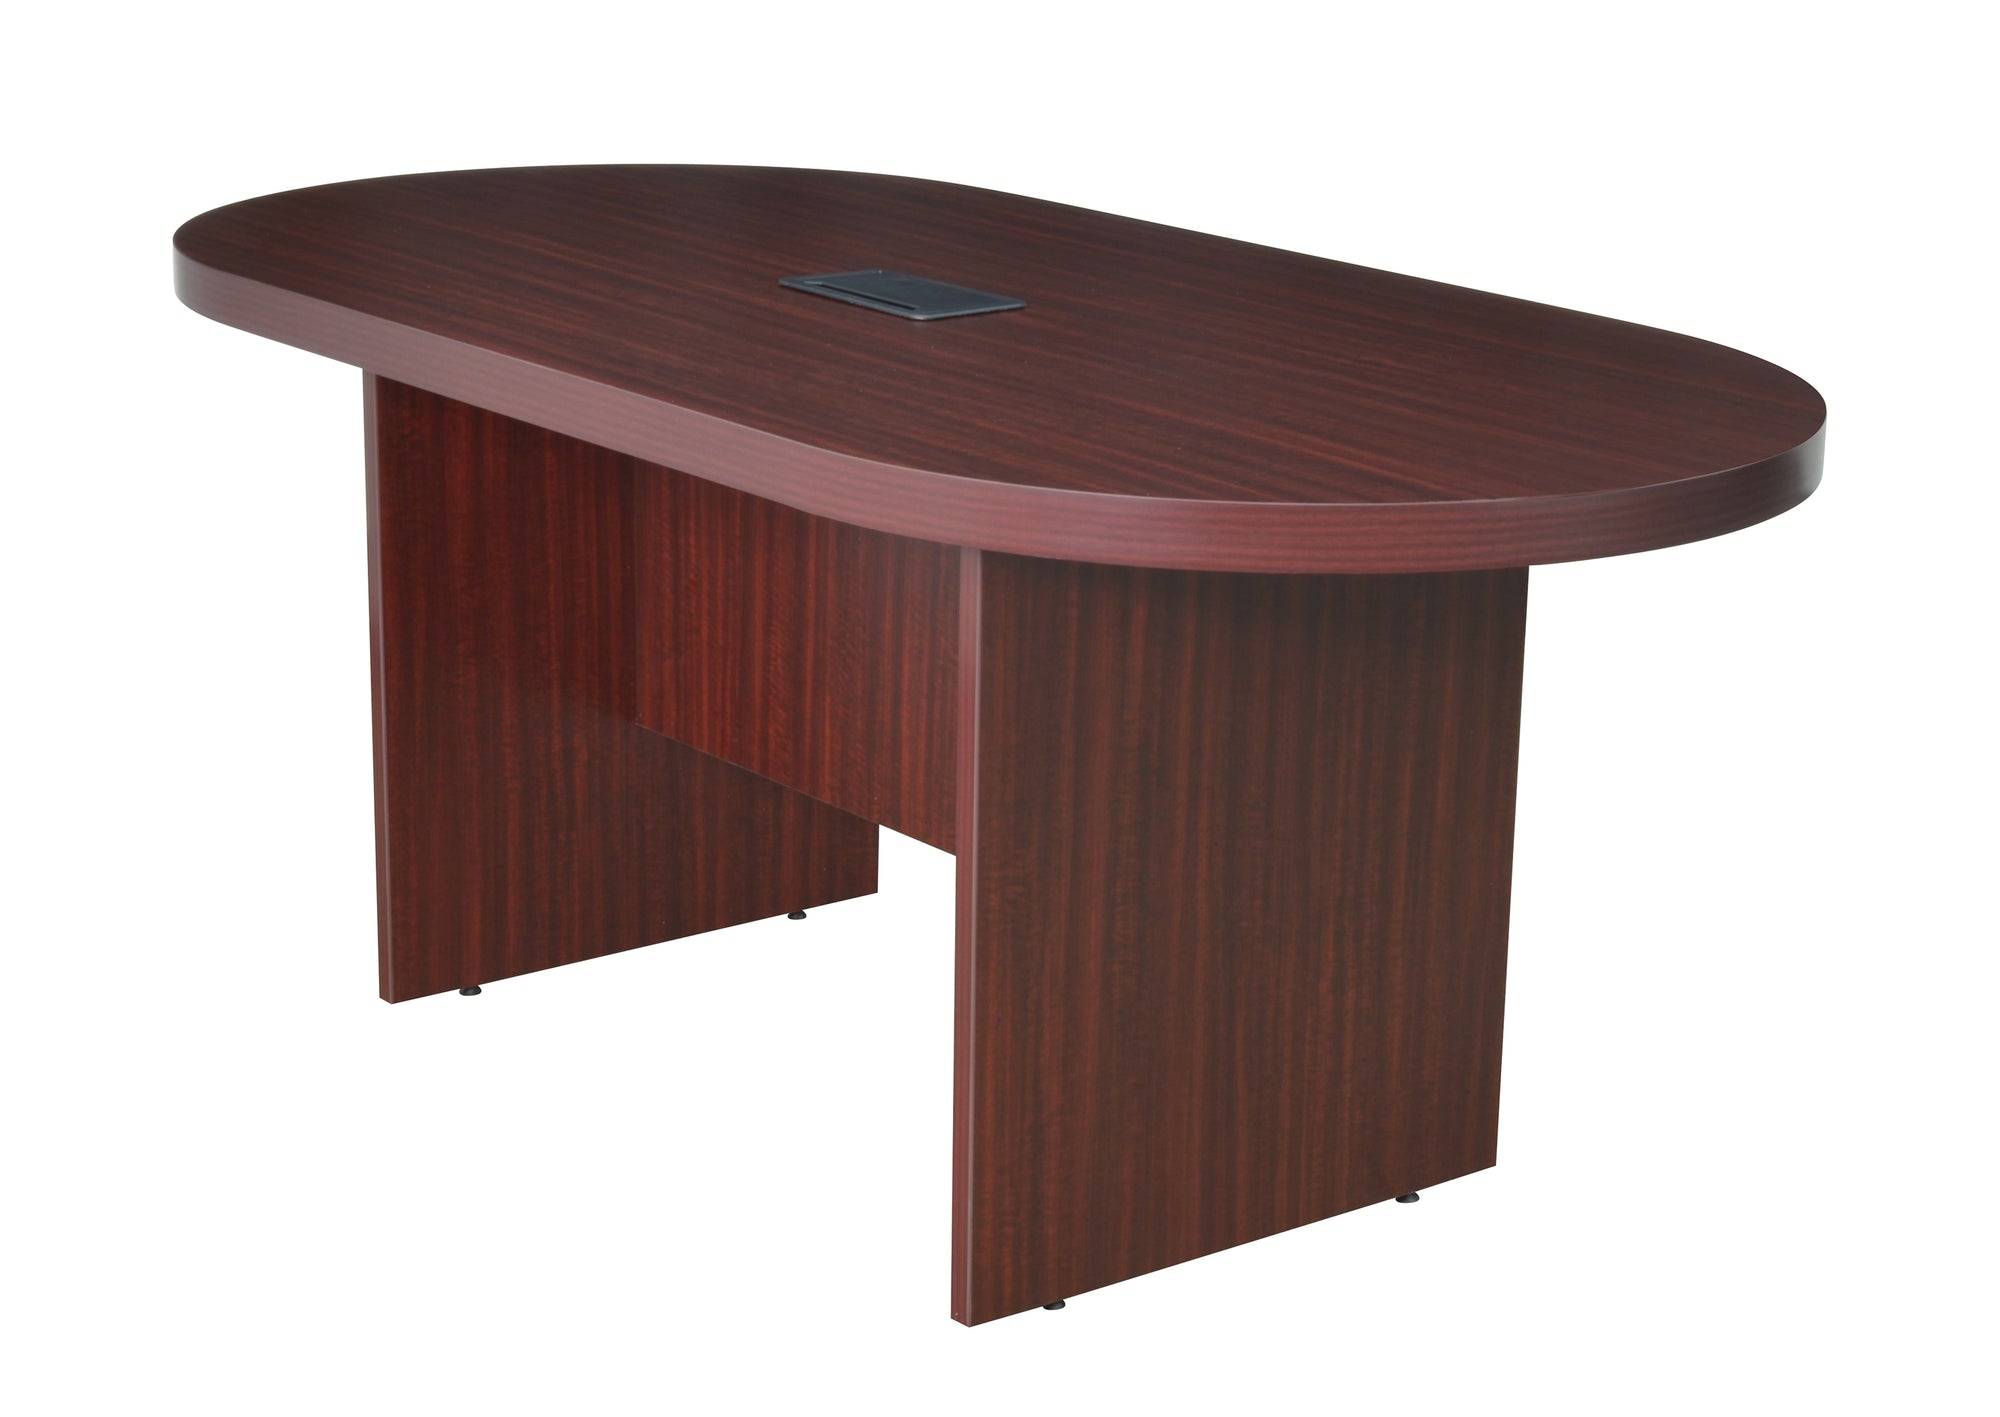 71 Racetrack Conference Table With Power Data Port In Mahogany